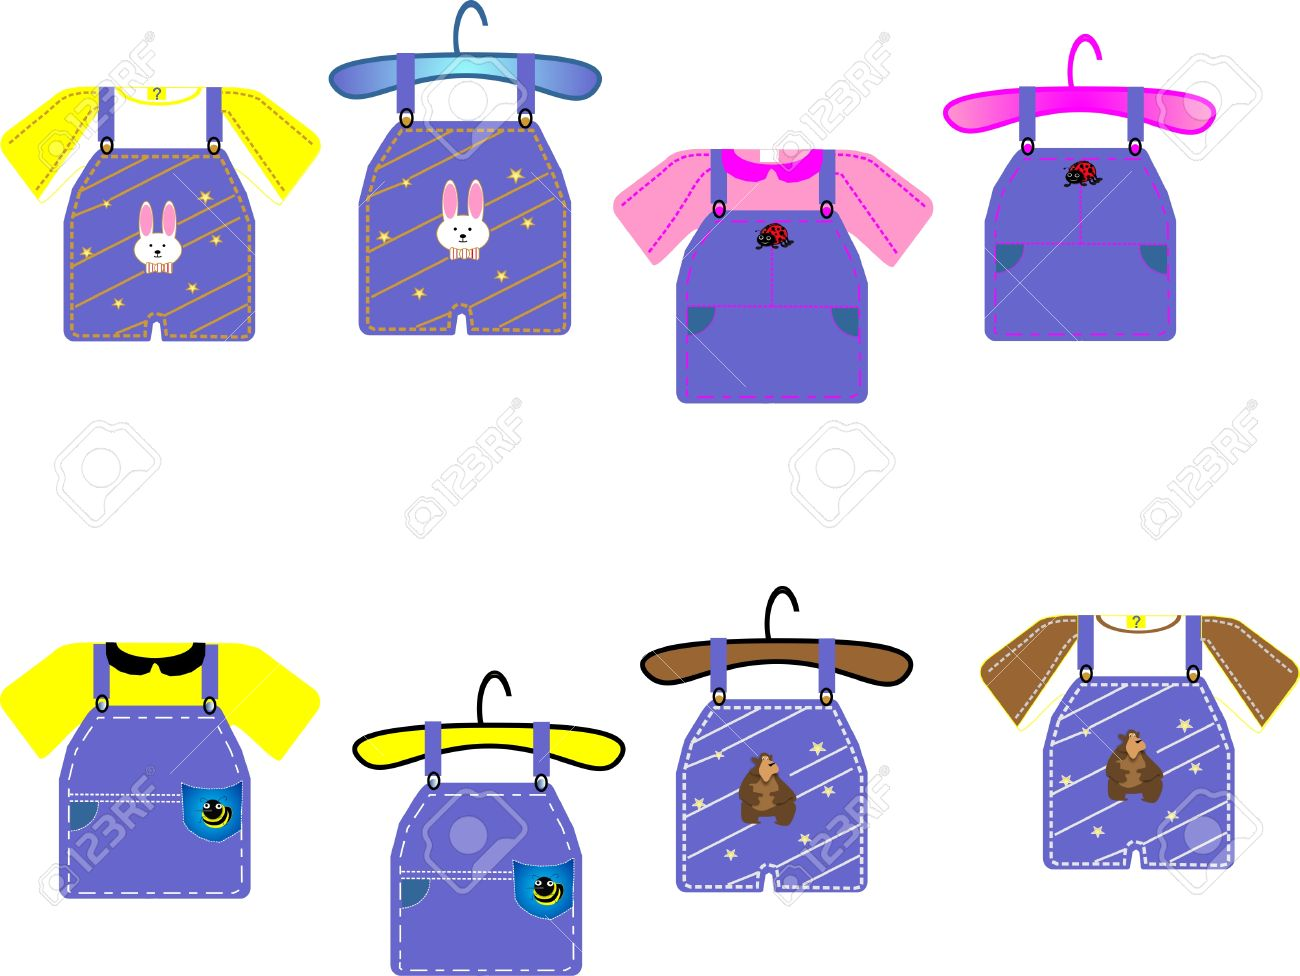 Childrens clothing clipart 2 » Clipart Portal.